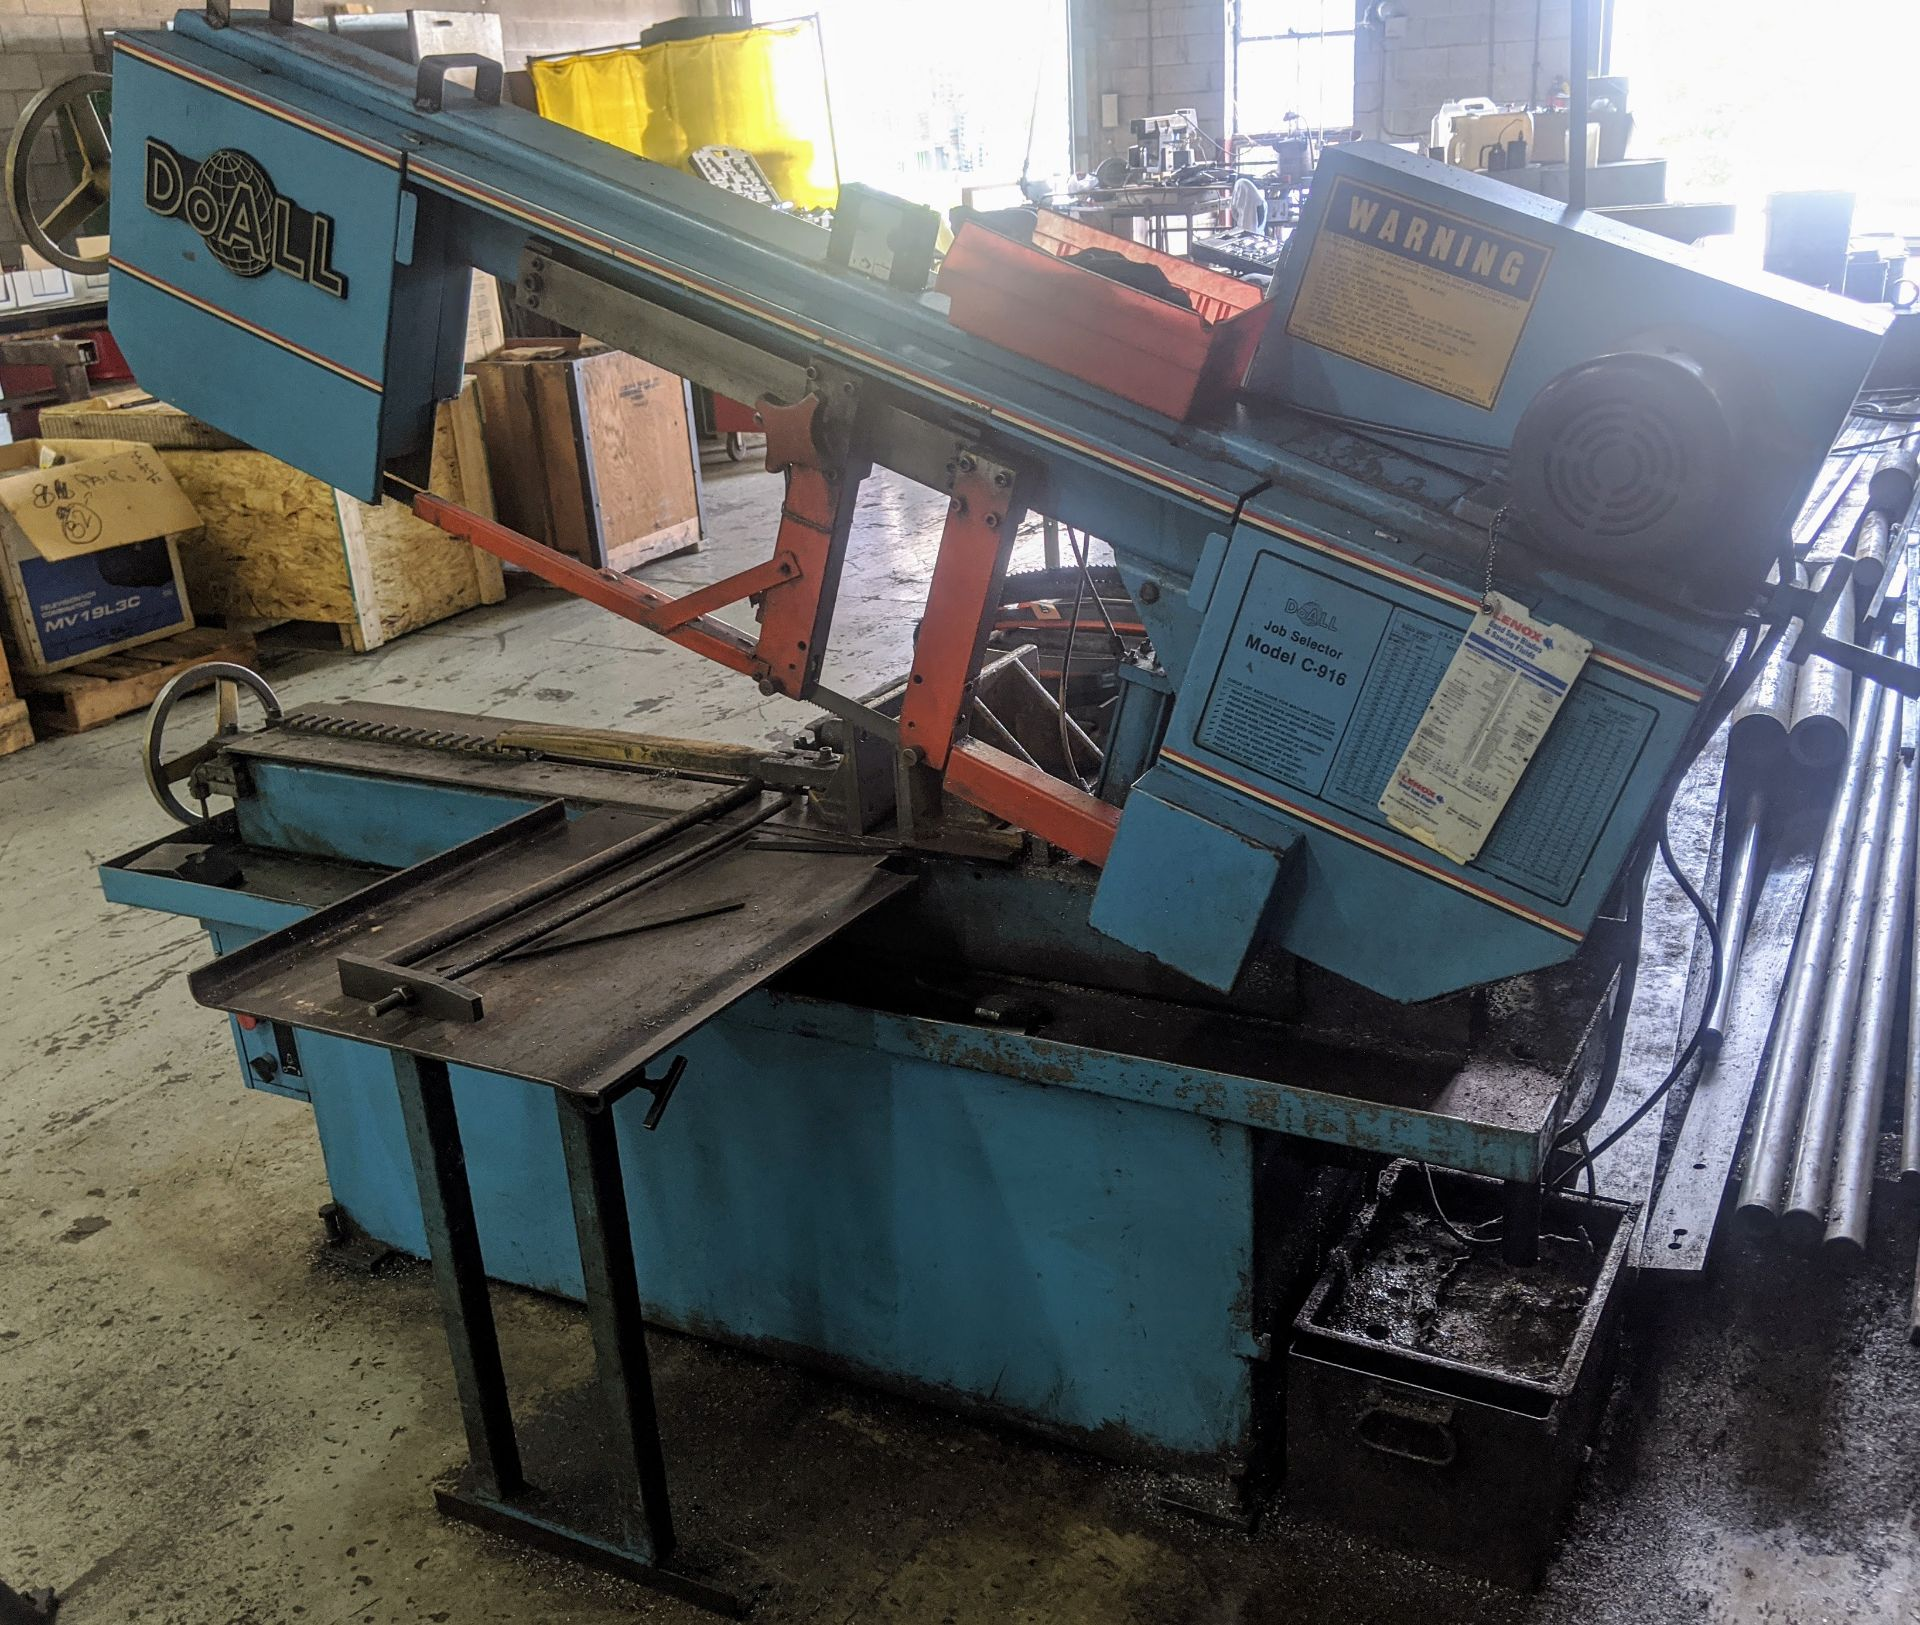 Lot 9 - DO-ALL C-916 HORIZONTAL BANDSAW, S/N 470-89611 W/ 10' CONVEYOR AND (2) EXTRA BLADES